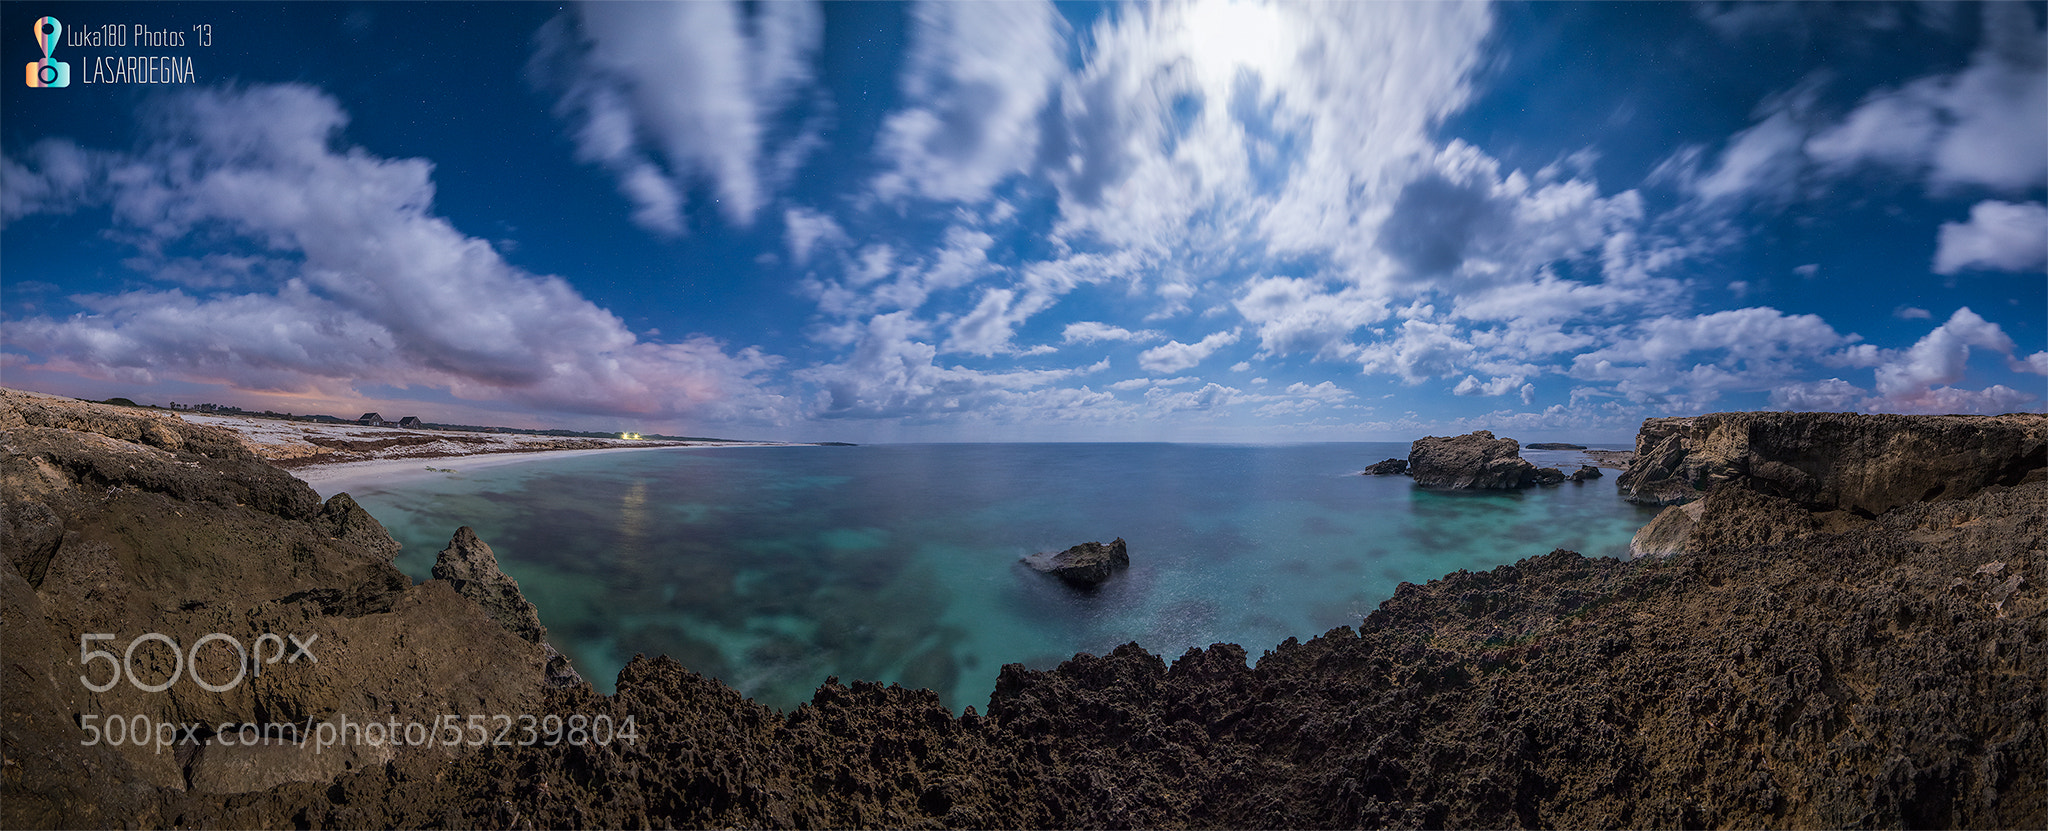 Photograph Is Arutas's Night Panoramic by Luka180 S. on 500px